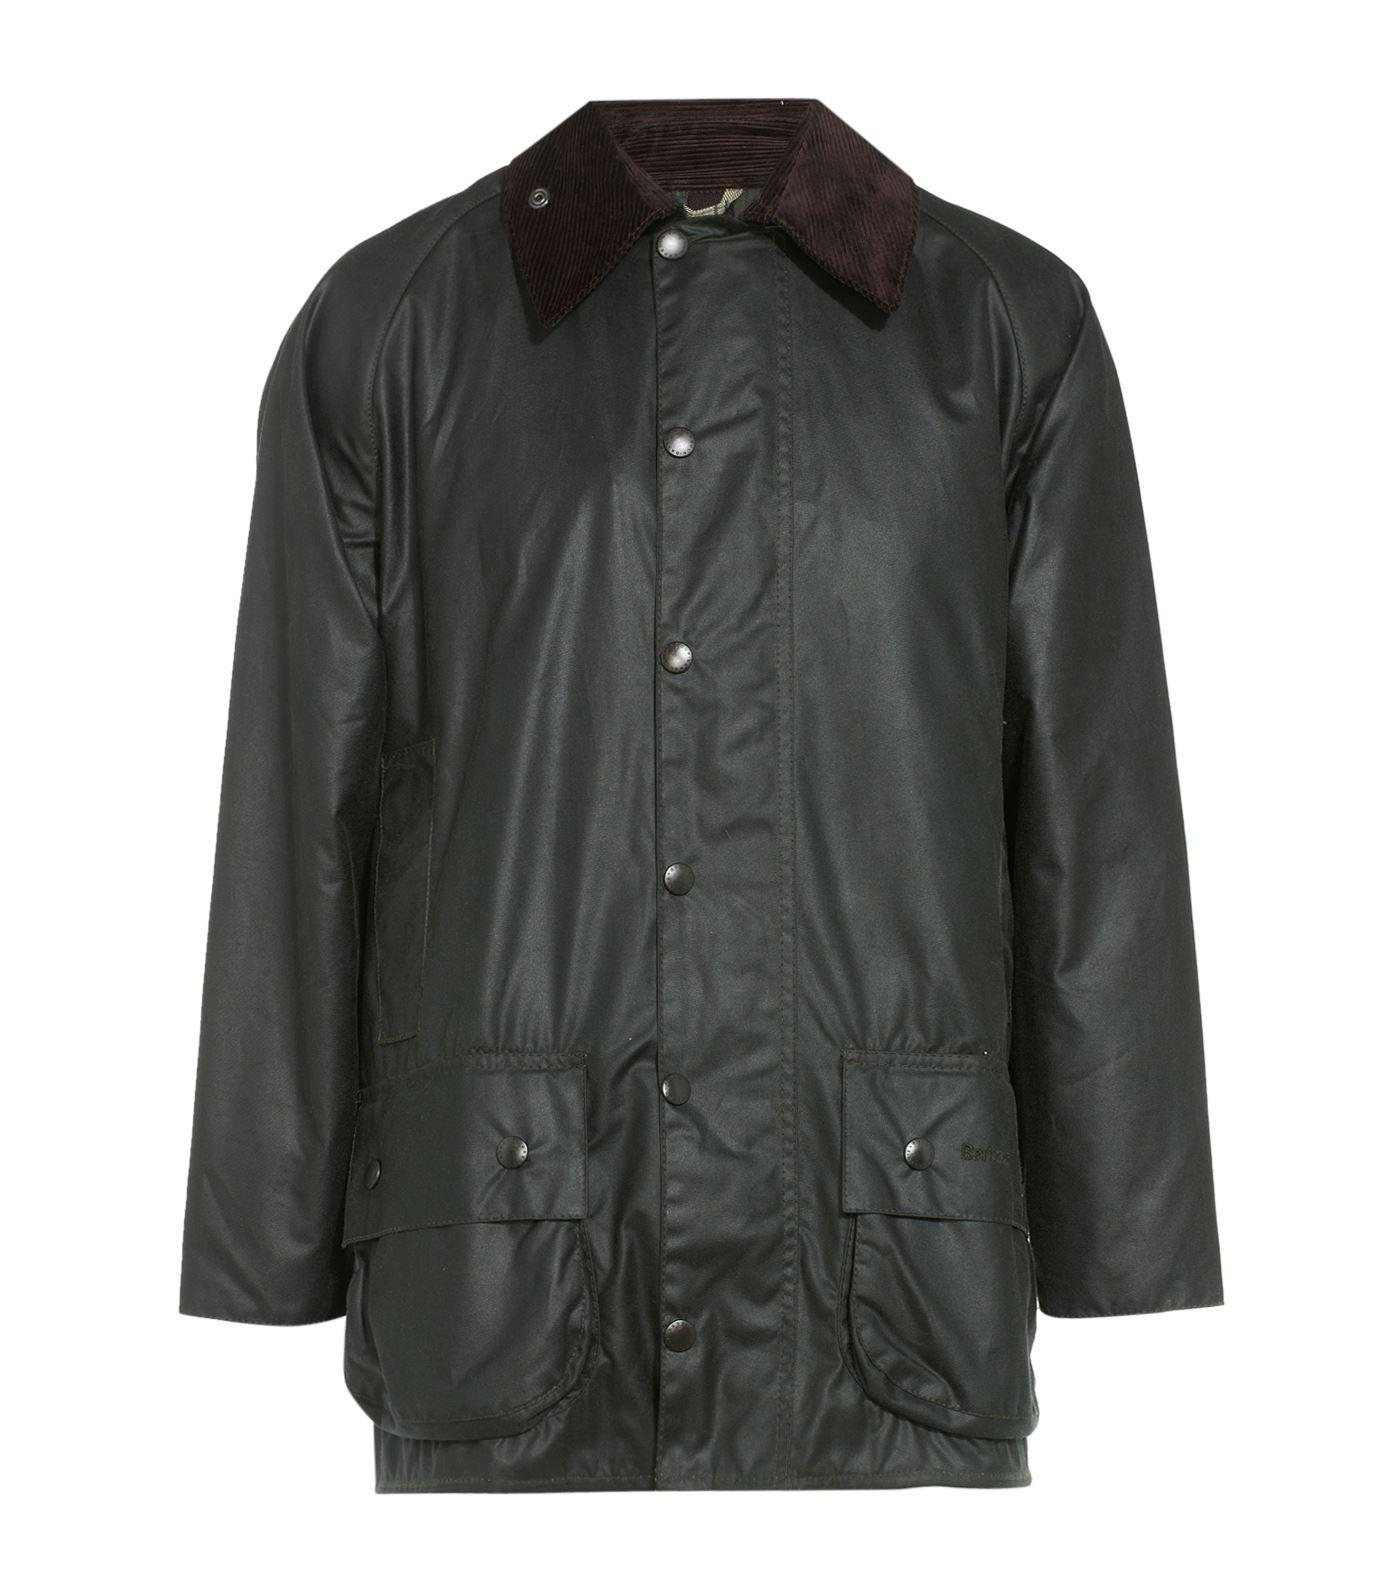 1ab4c904521b Barbour Beaufort Jacket in Green for Men - Lyst